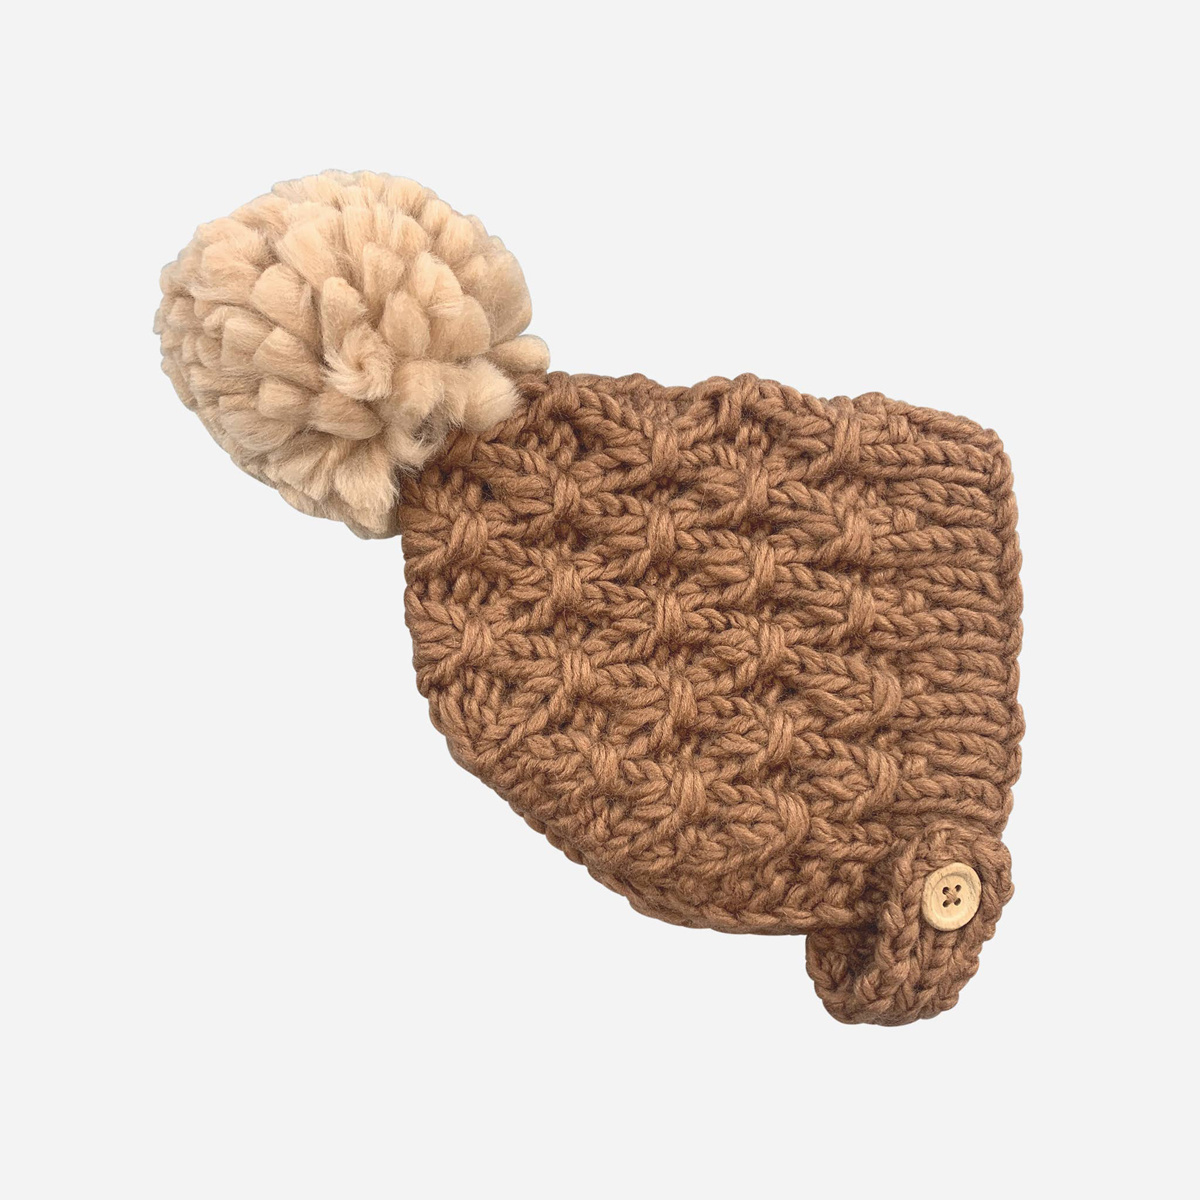 The Blueberry Hill - BH Libby Knit Bonnet, Pecan + Latte, 12-24 month